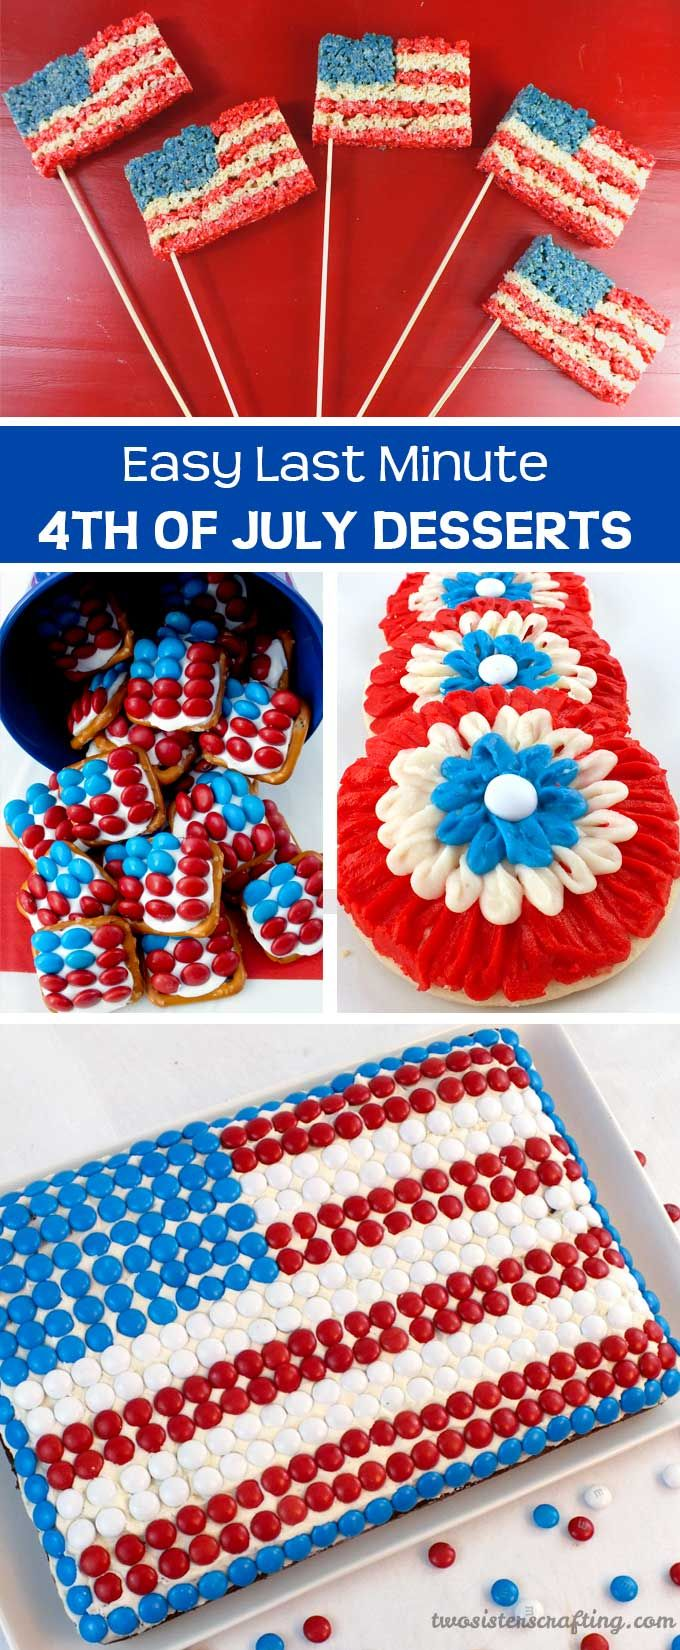 yummy 4th july recipes